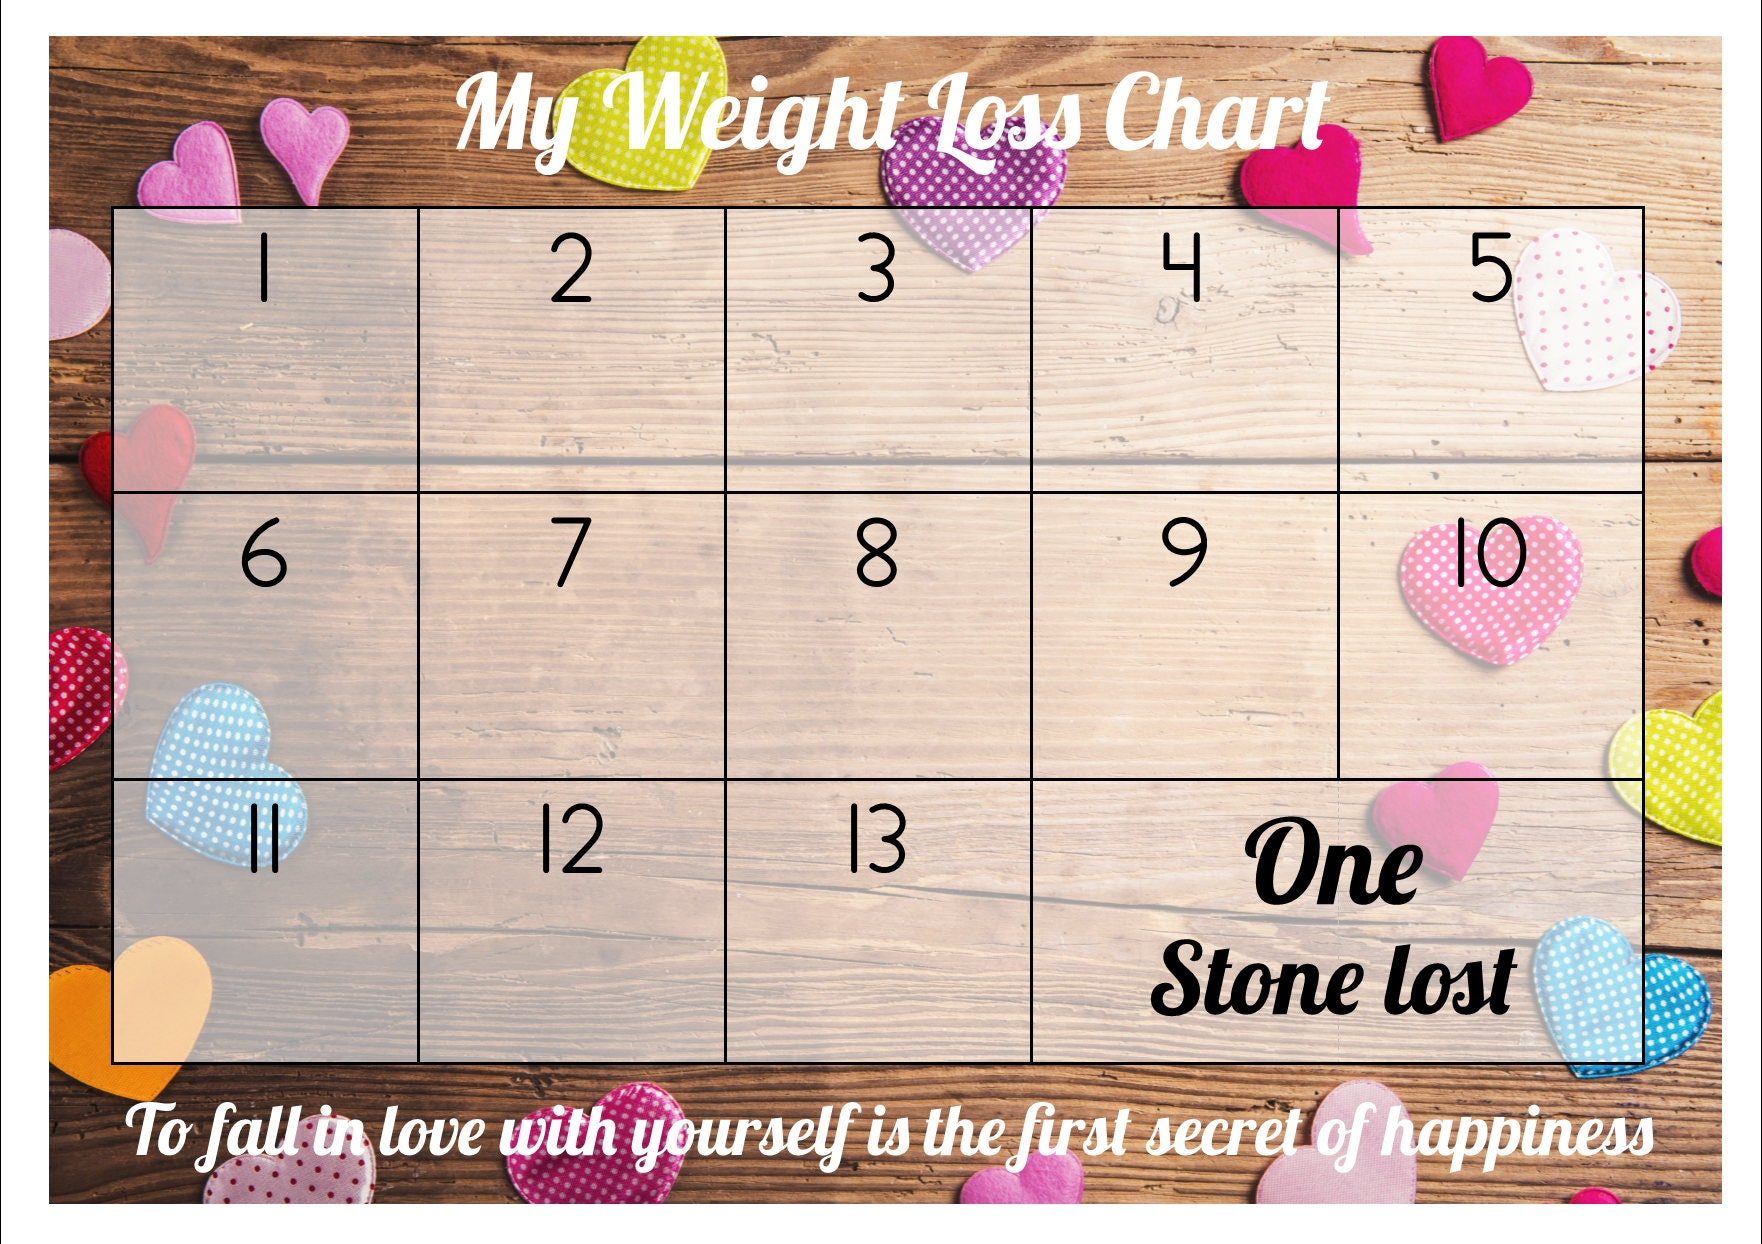 Weight loss chart tracker 1 stone comes with star description weight loss chart tracker nvjuhfo Choice Image